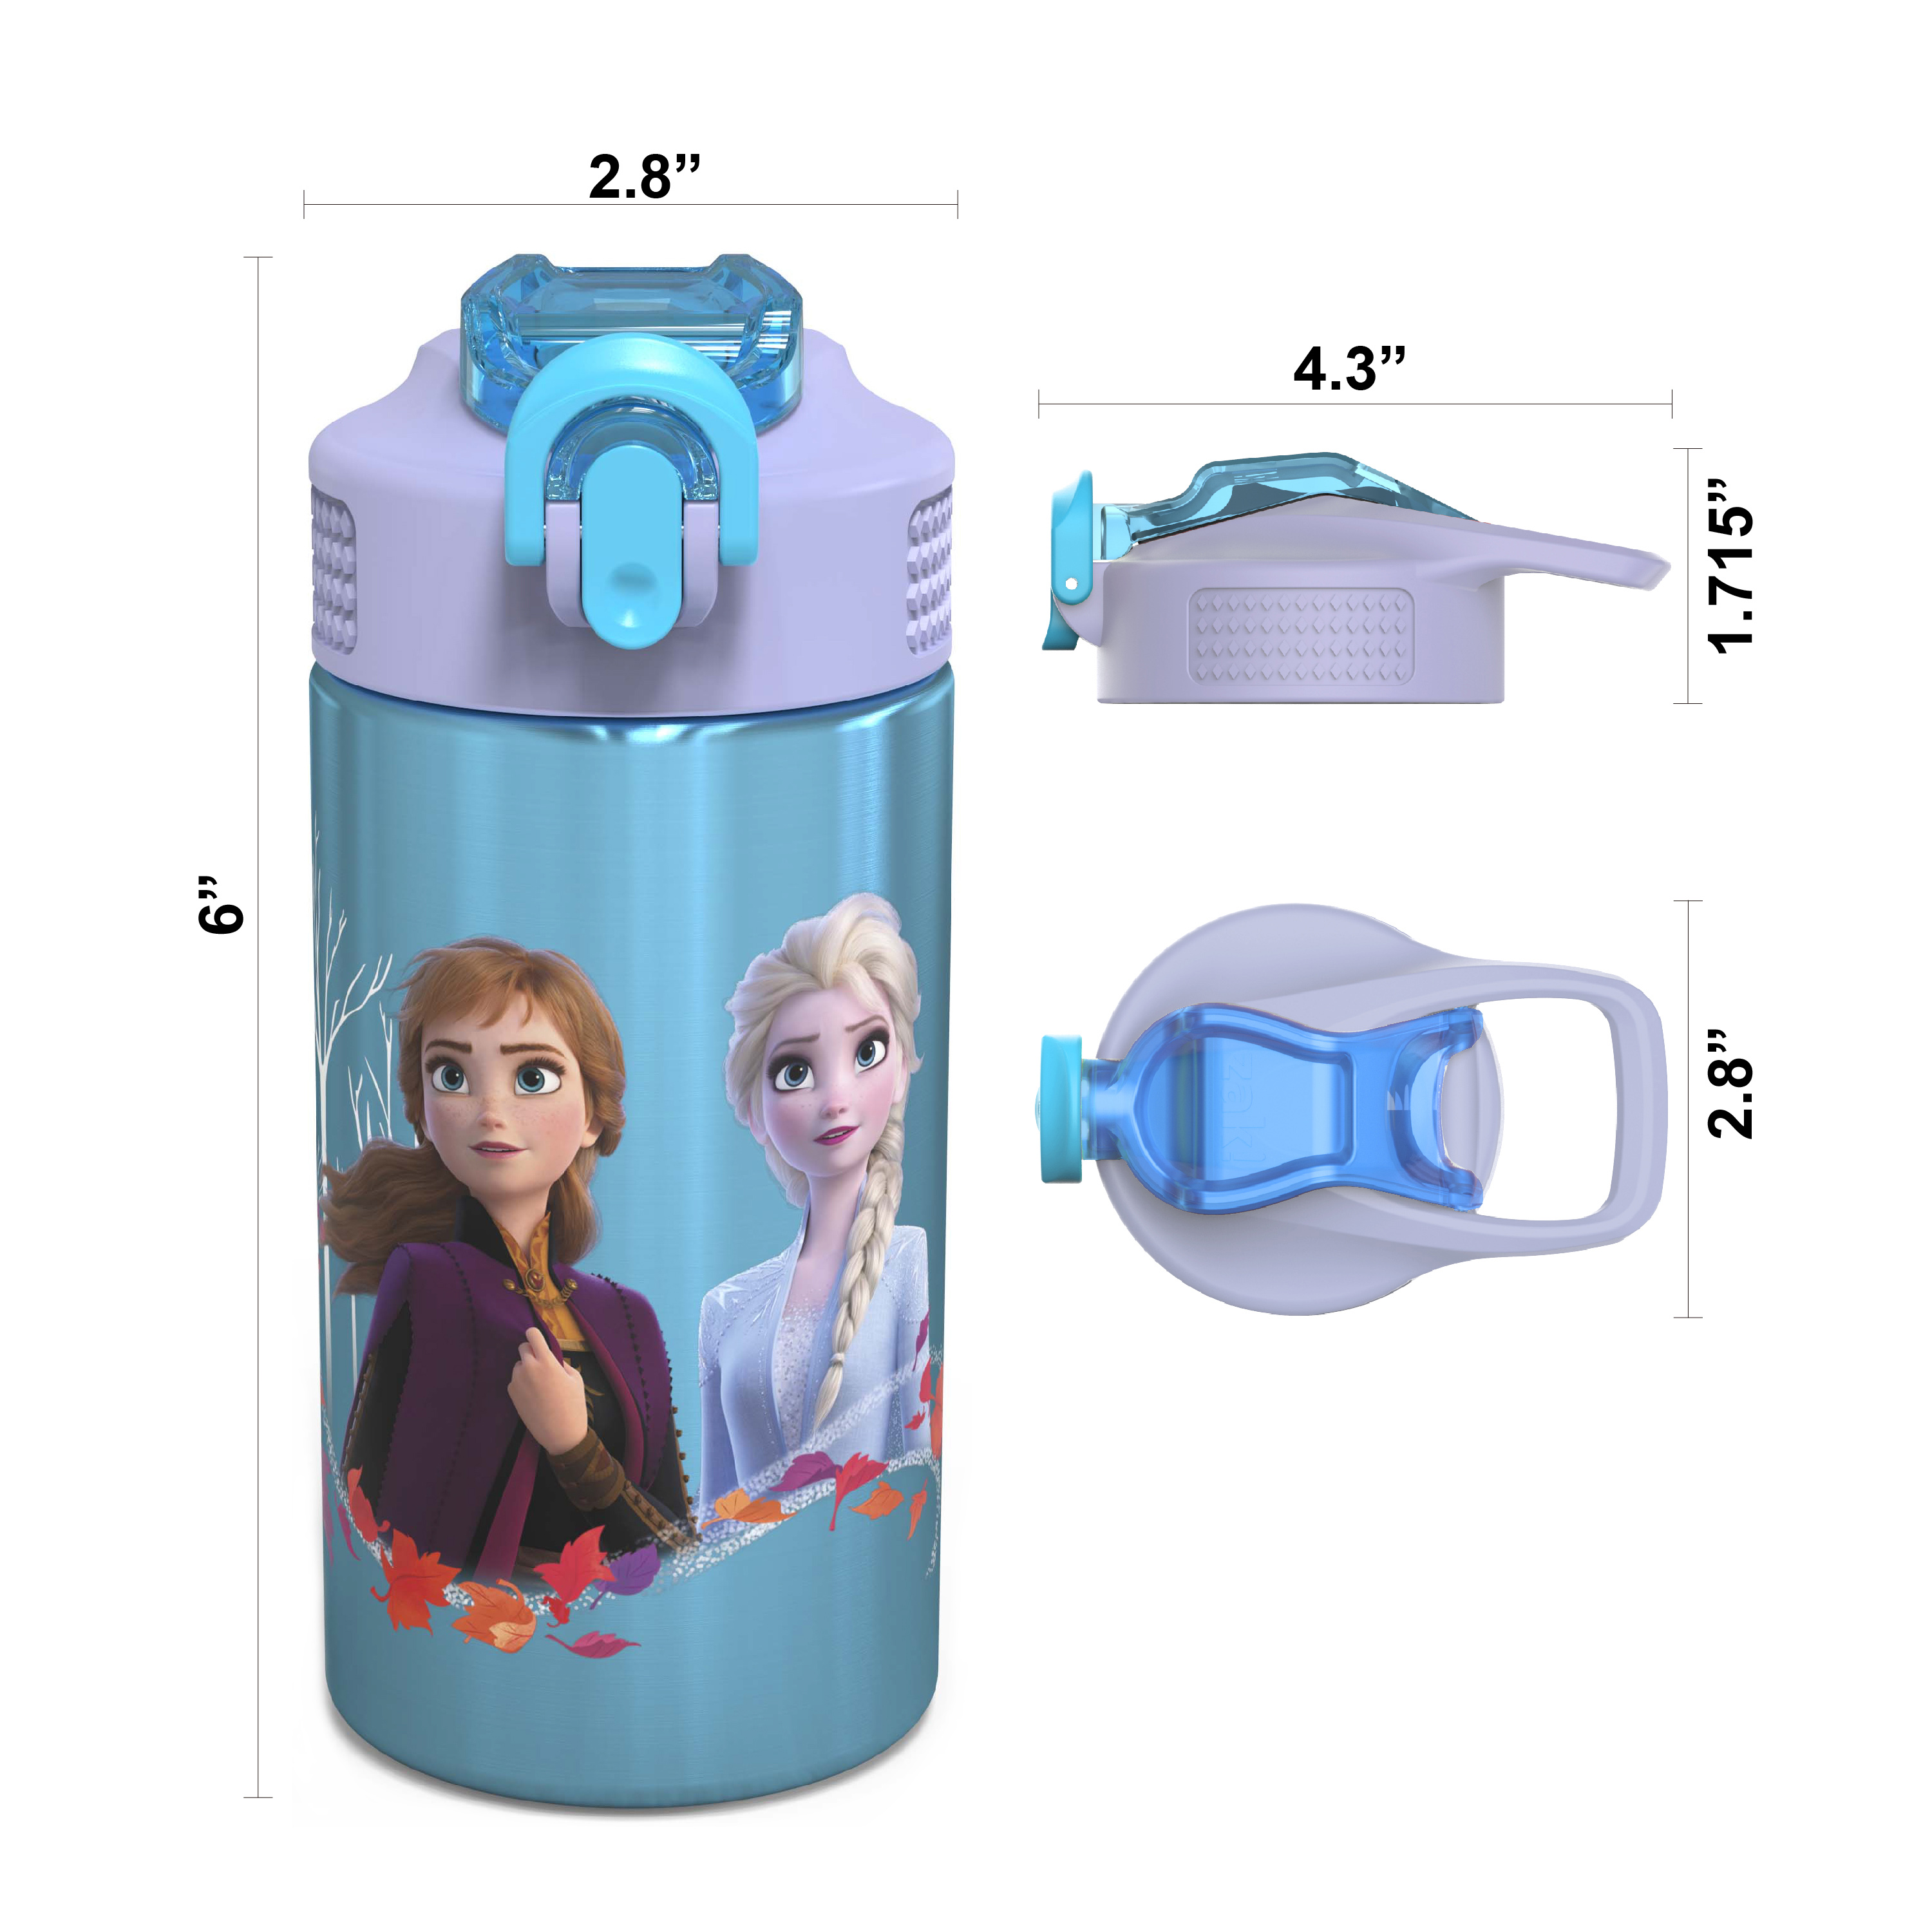 Disney Frozen 2 Movie Water Bottle, Anna , Elsa and Olaf, 2-piece set slideshow image 4